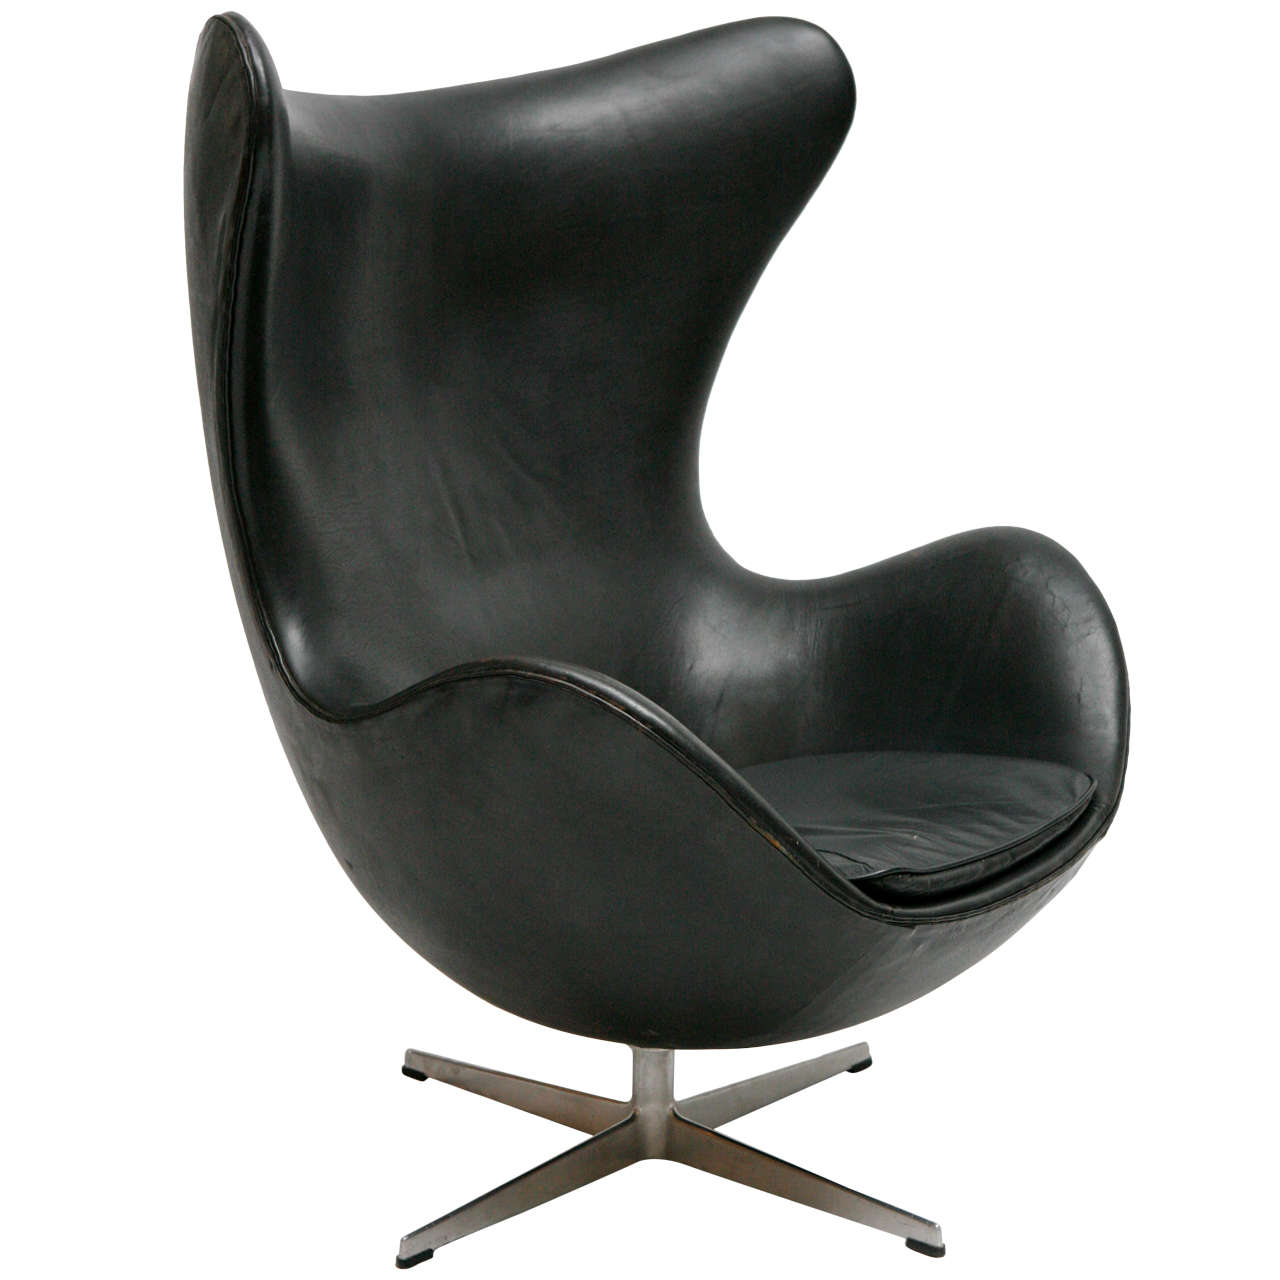 Vintage Black Leather Arne Jacobsen Egg Chair At 1stdibs